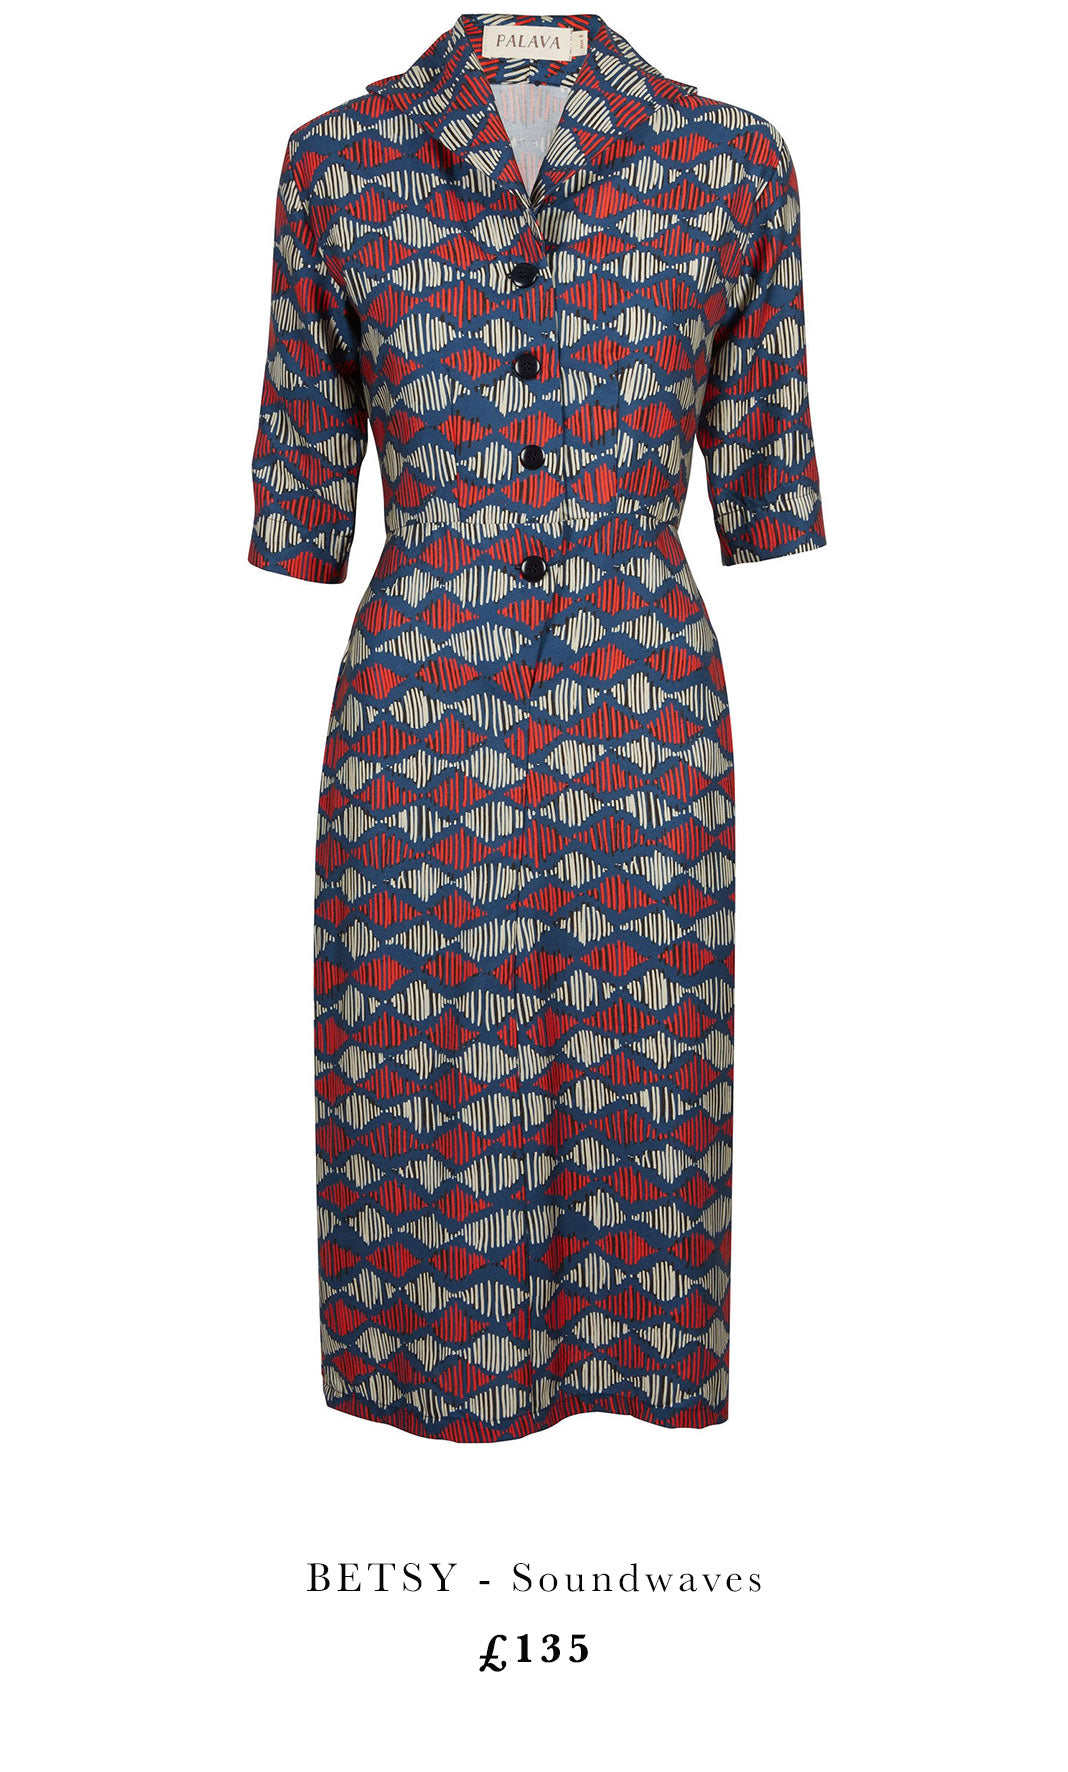 Betsy Soundwaves vintage print dress